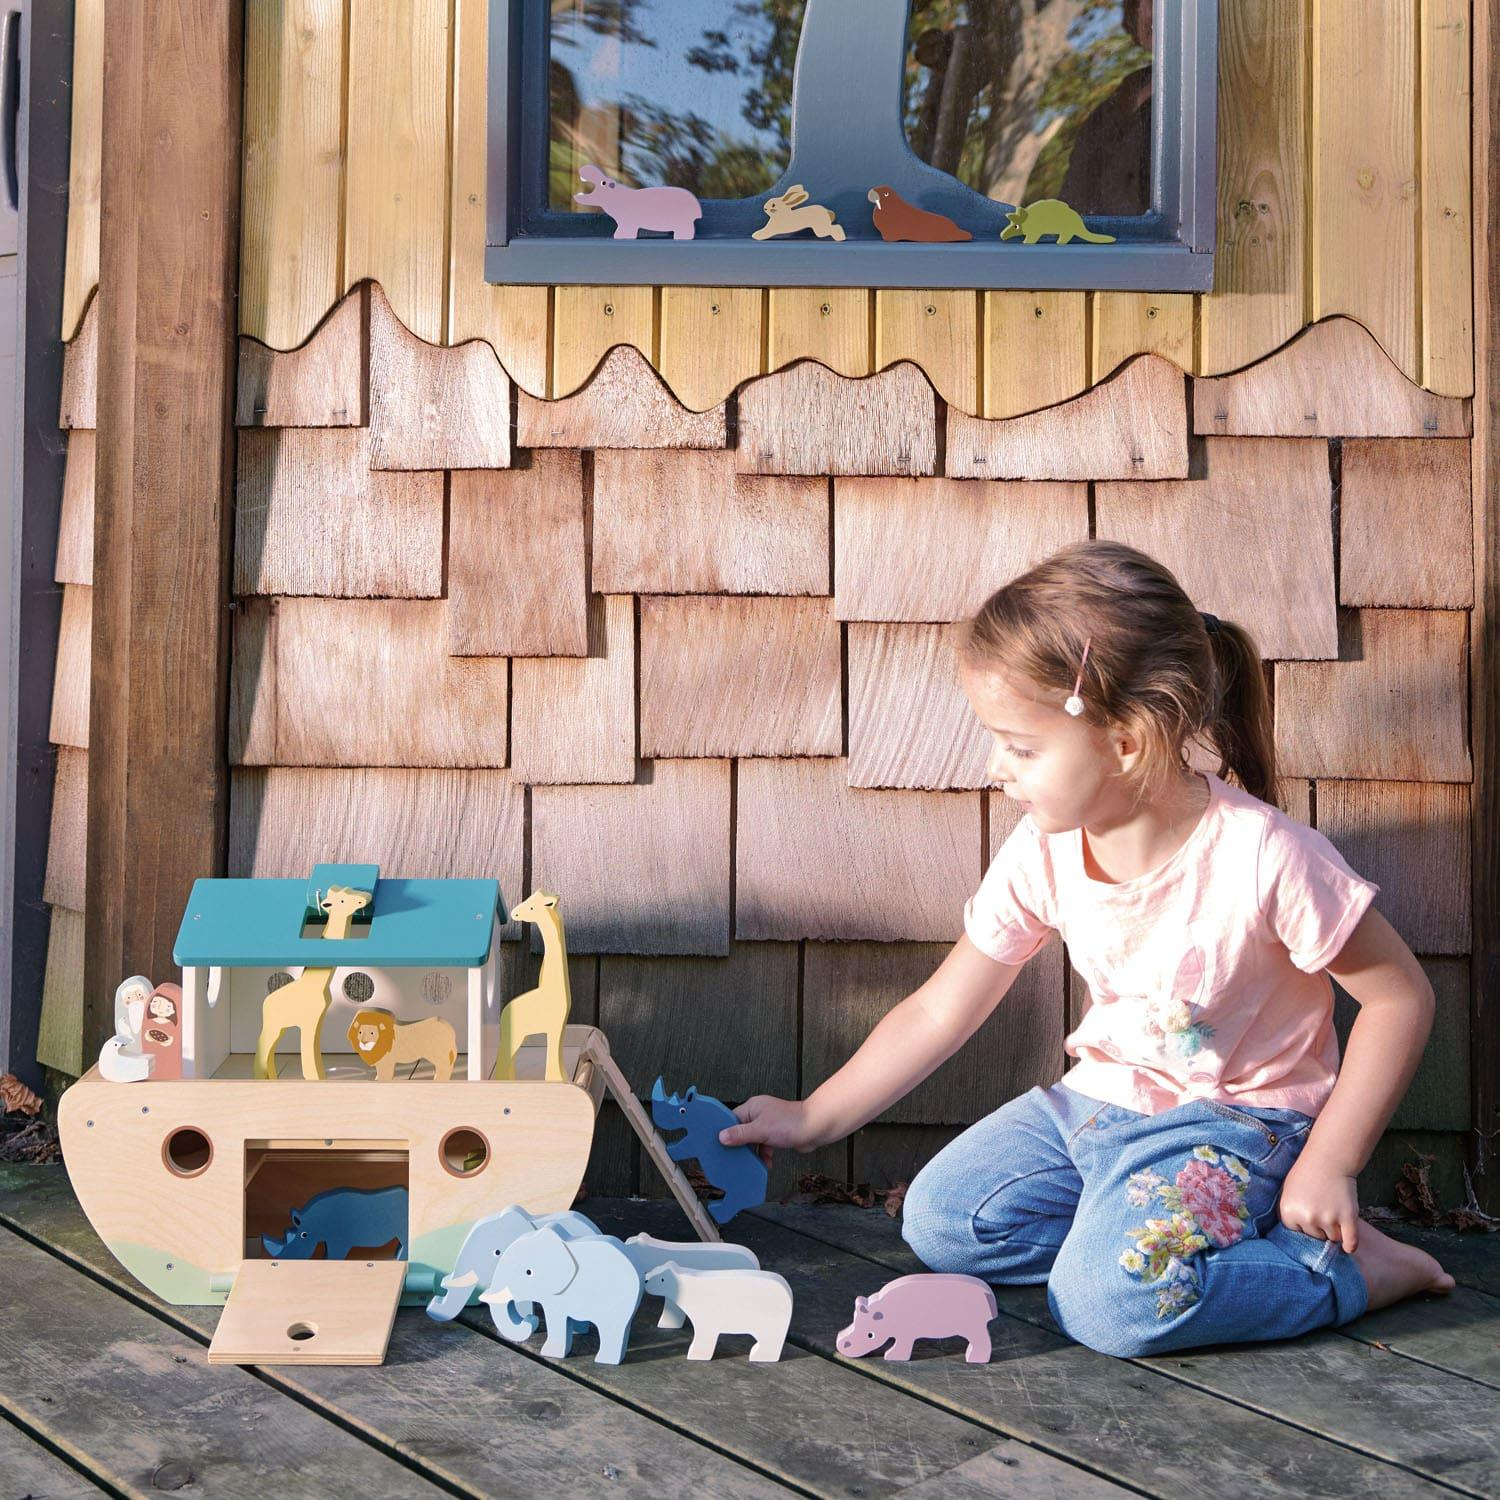 New Noah's Ark with 10 Pairs of Wooden Animals